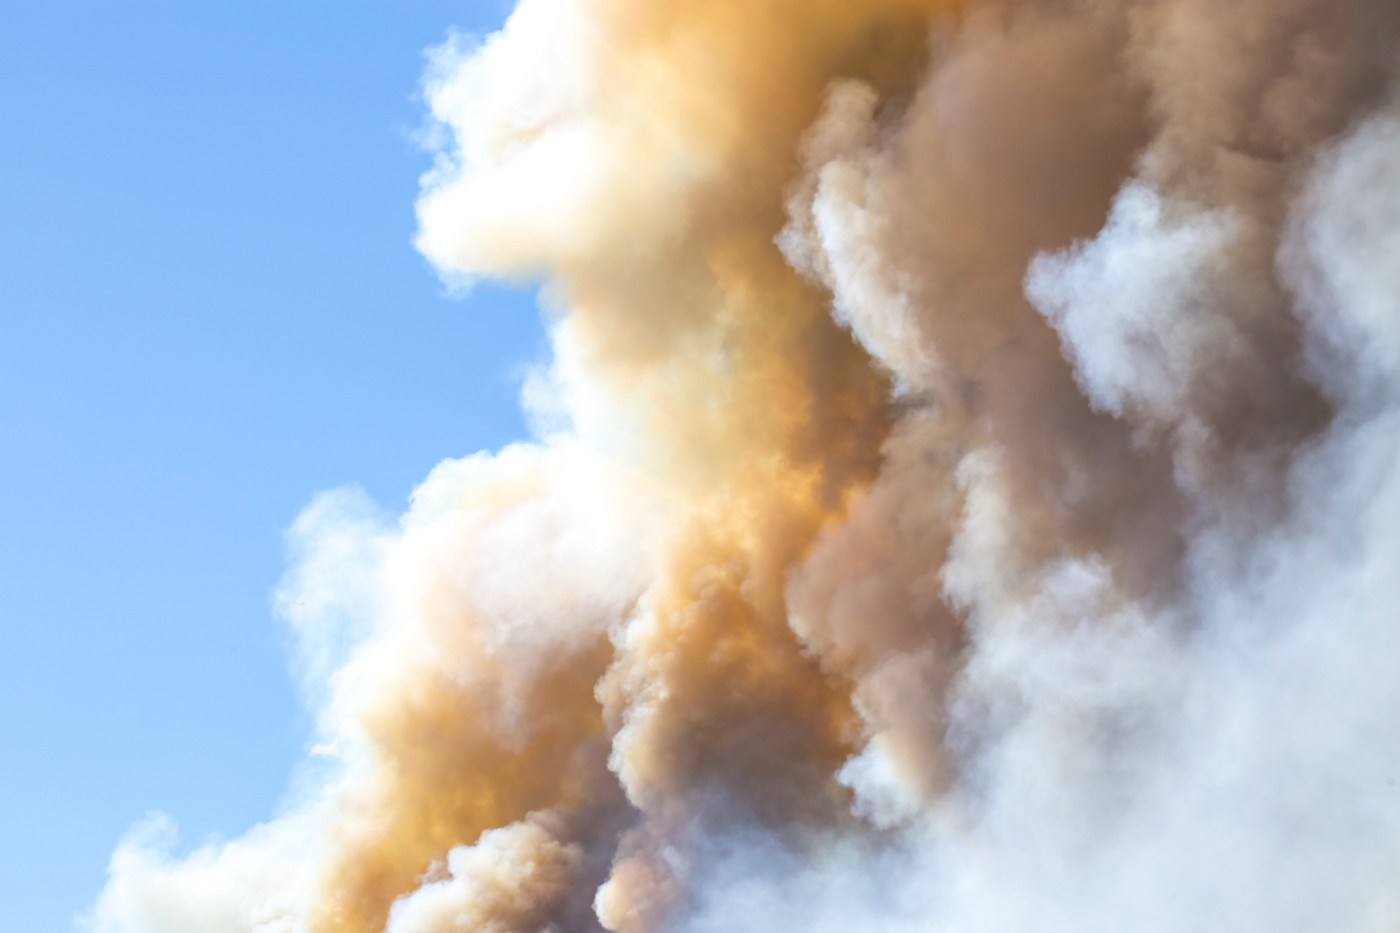 photo of smoke, steam and ash rising from a fire against blue sky